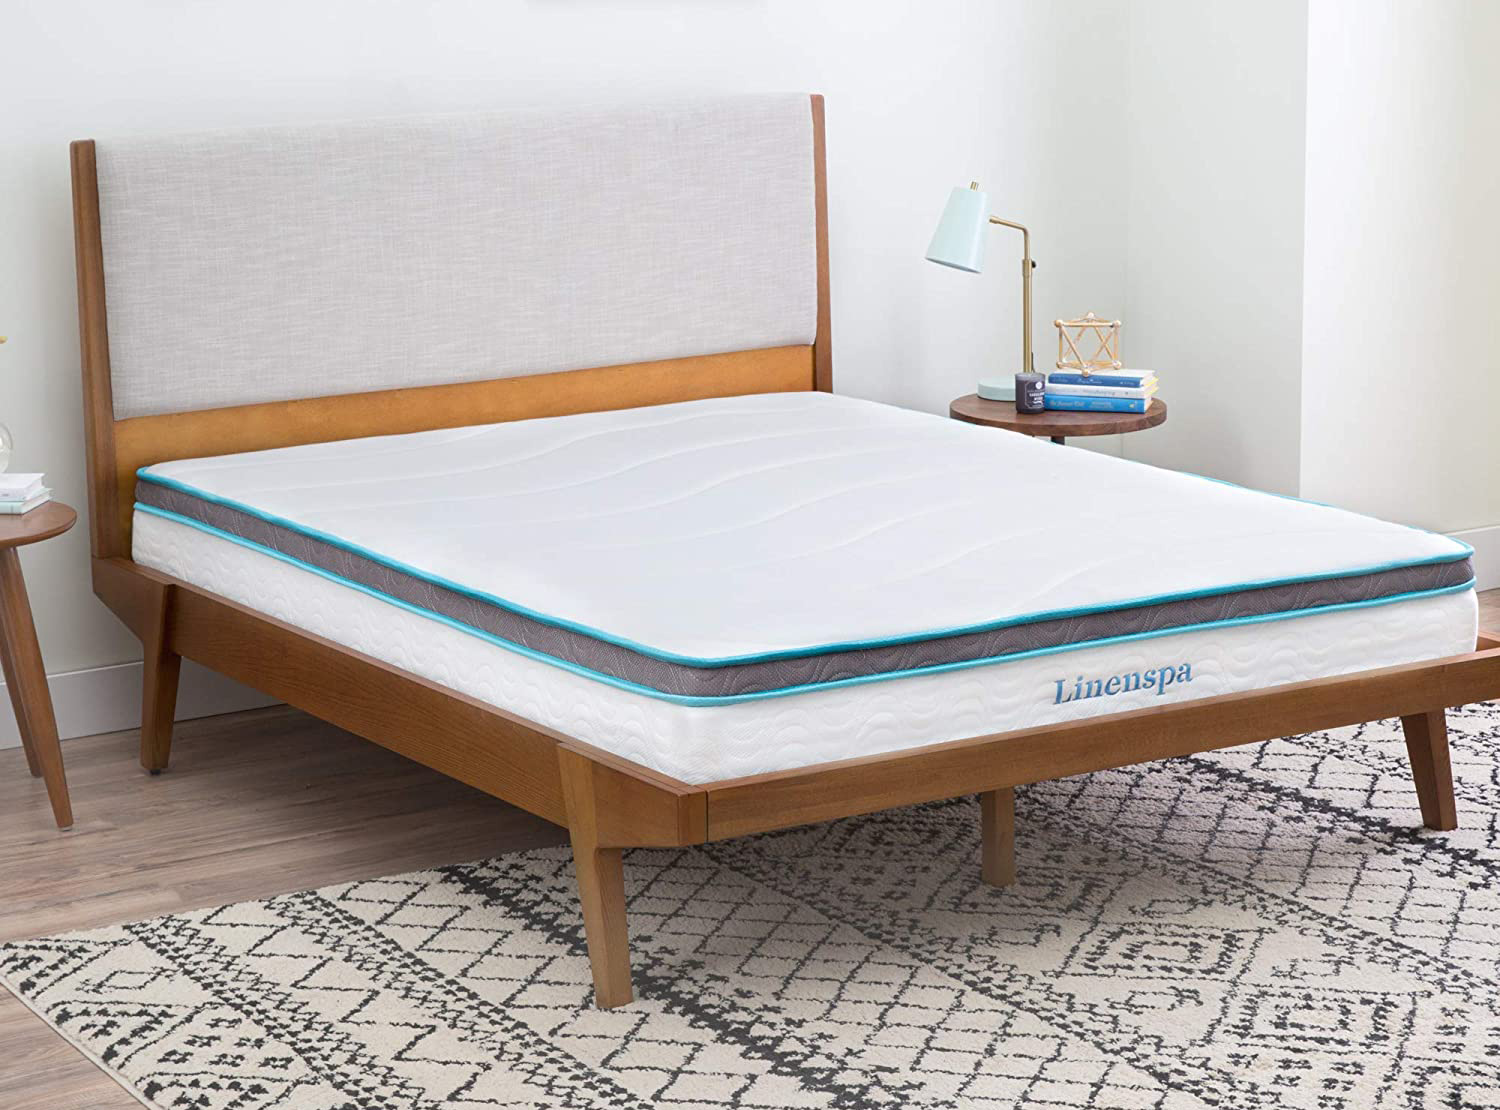 Believe it or not, you can get a memory foam mattress with 19,000 5-star ratings for $100